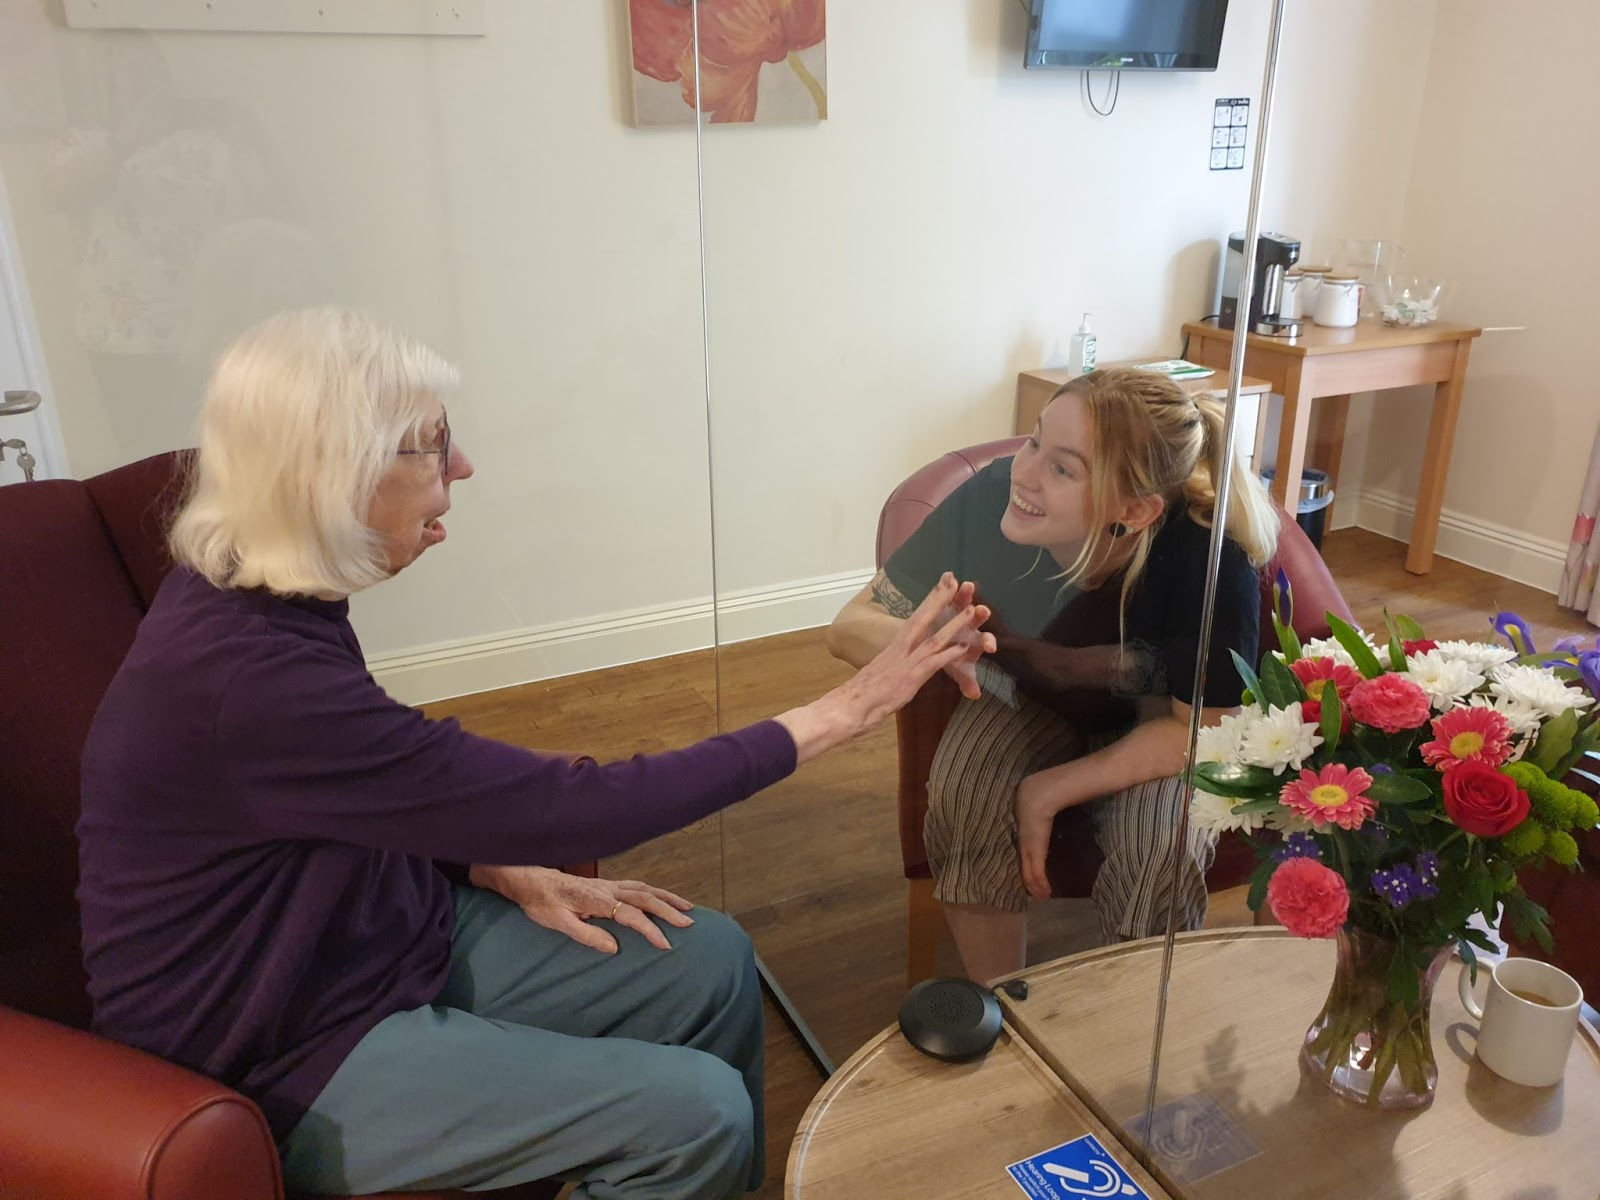 a care home resident greets her visitor through a glass partition